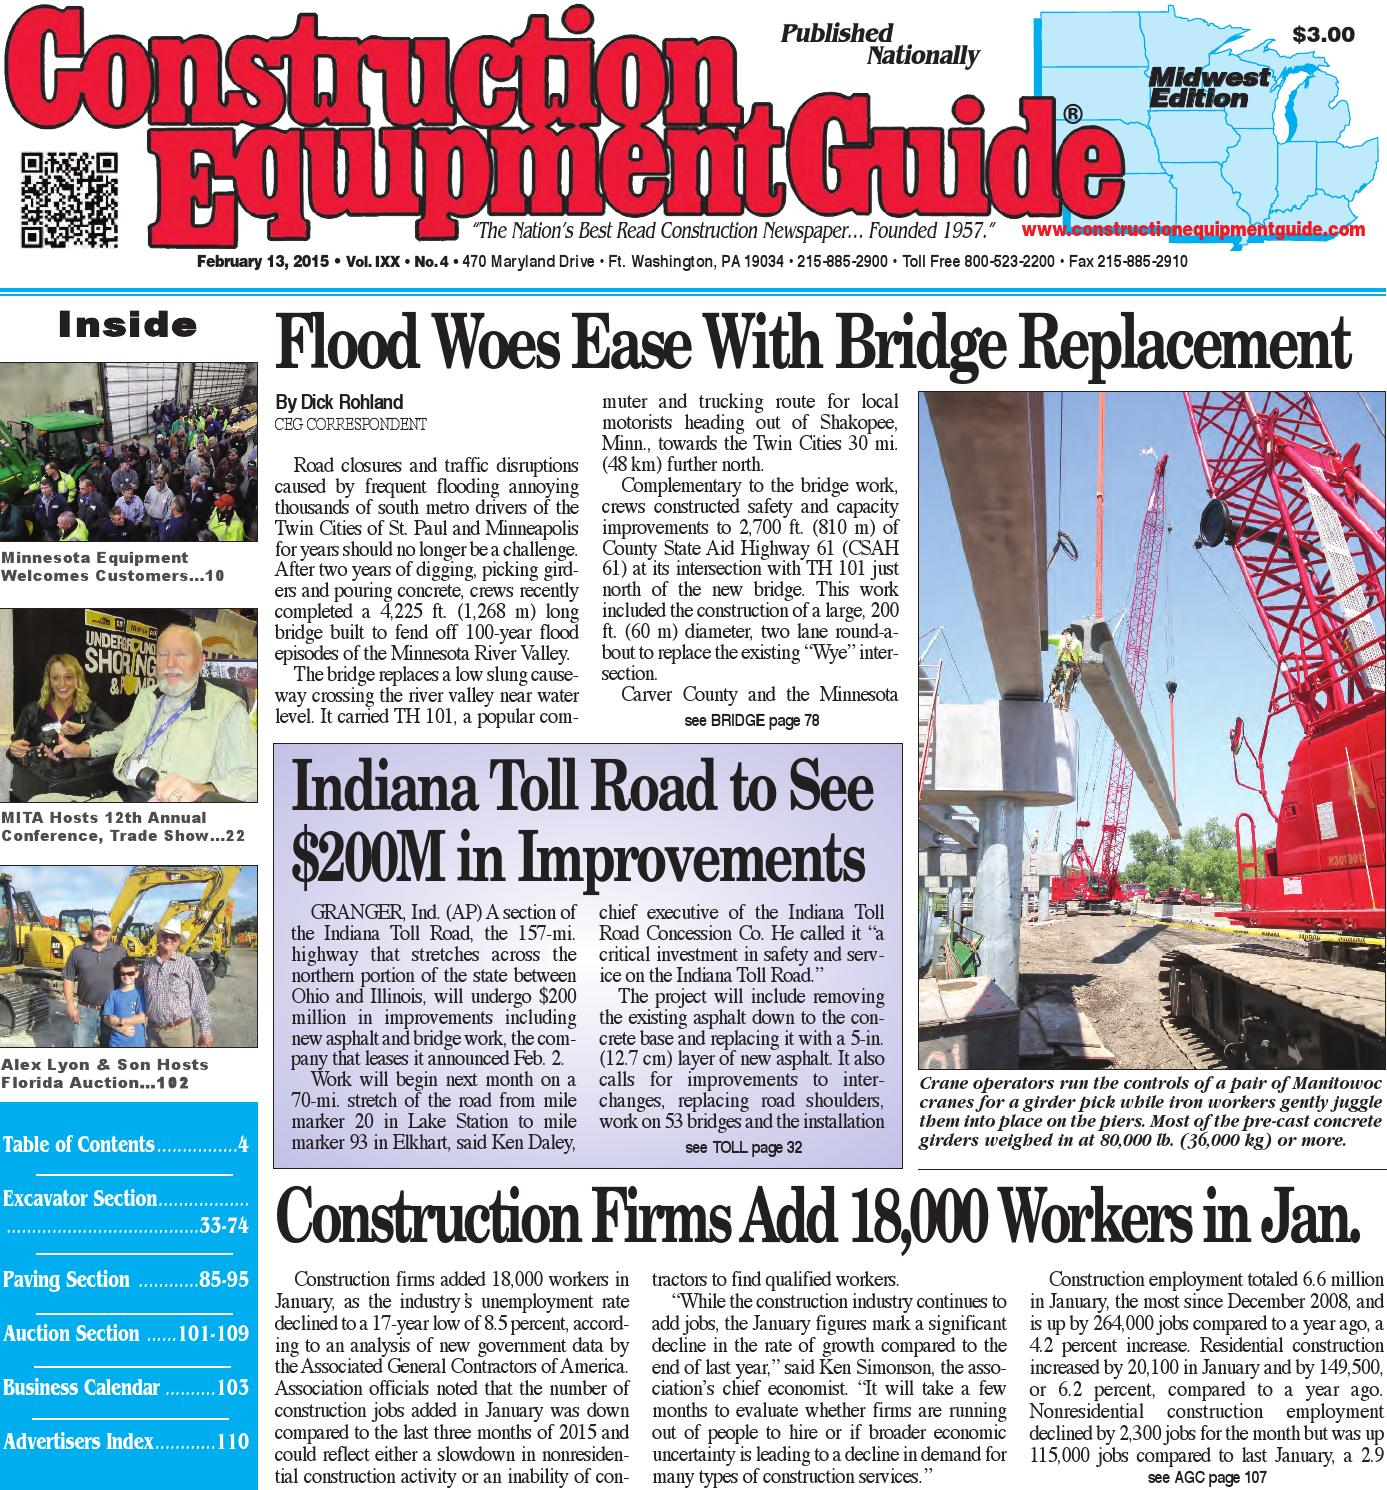 Midwest 04 2016 By Construction Equipment Guide Issuu Wiring Diagram Carver 3207